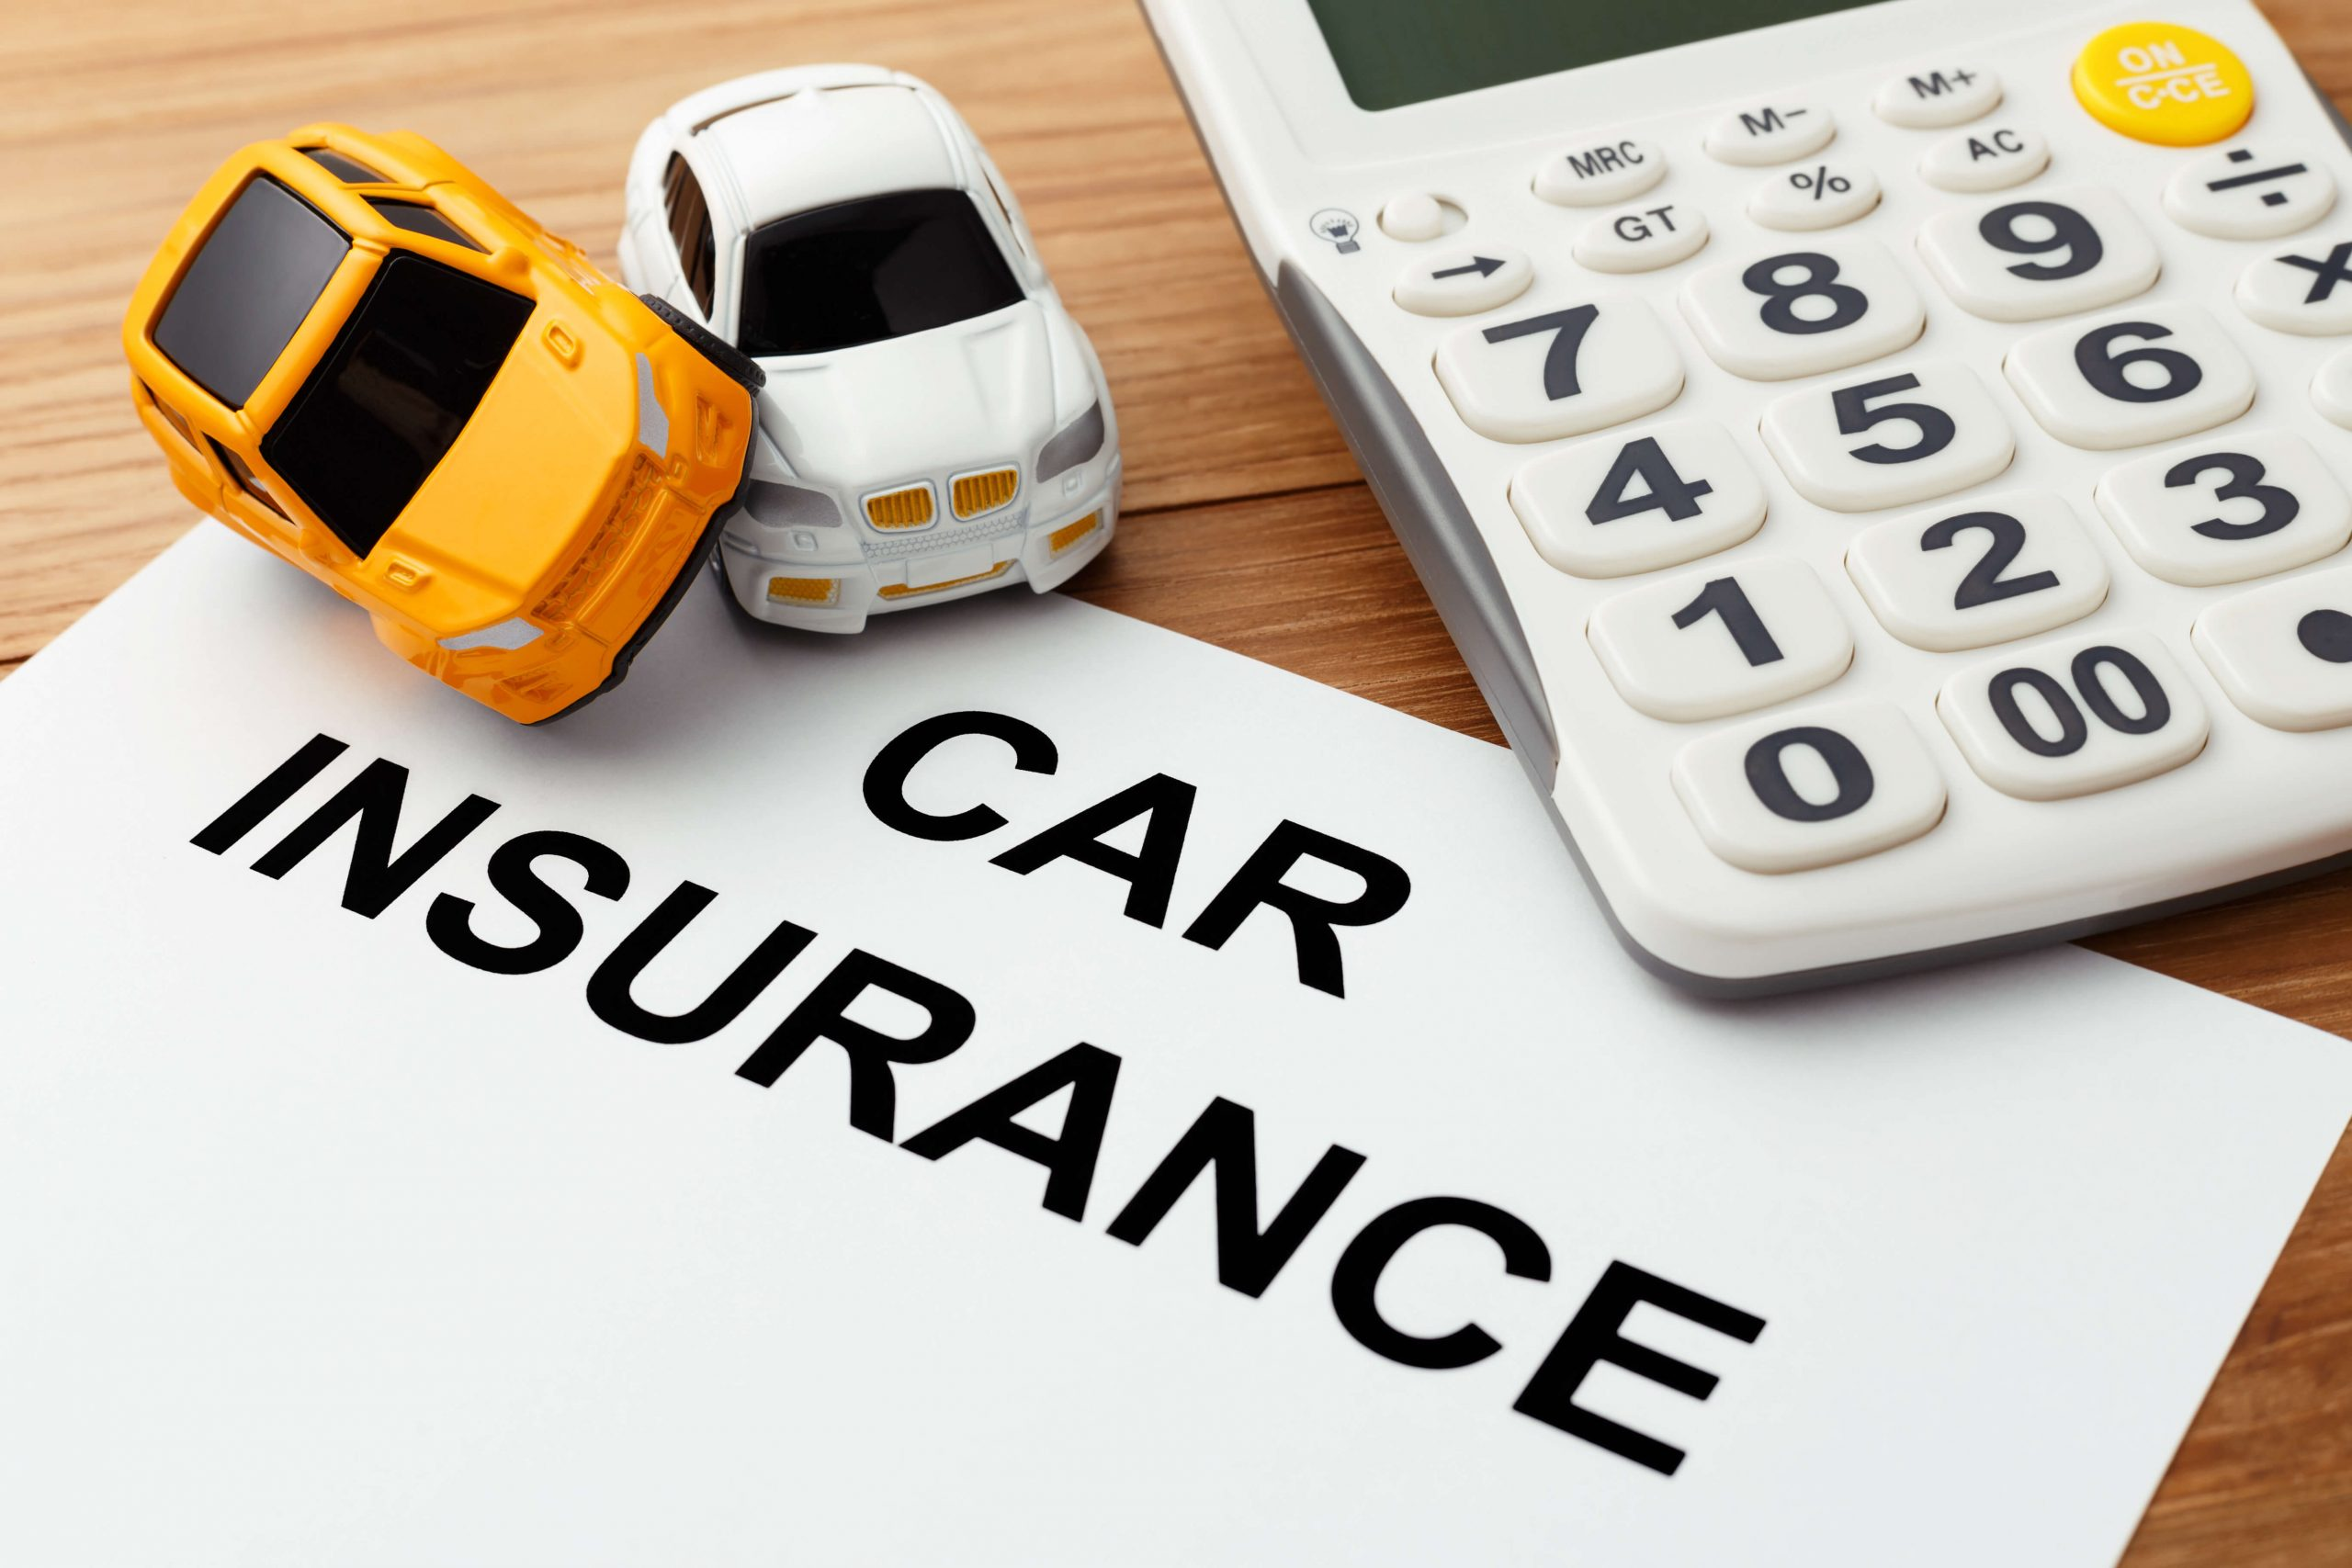 Average cost of auto insurance